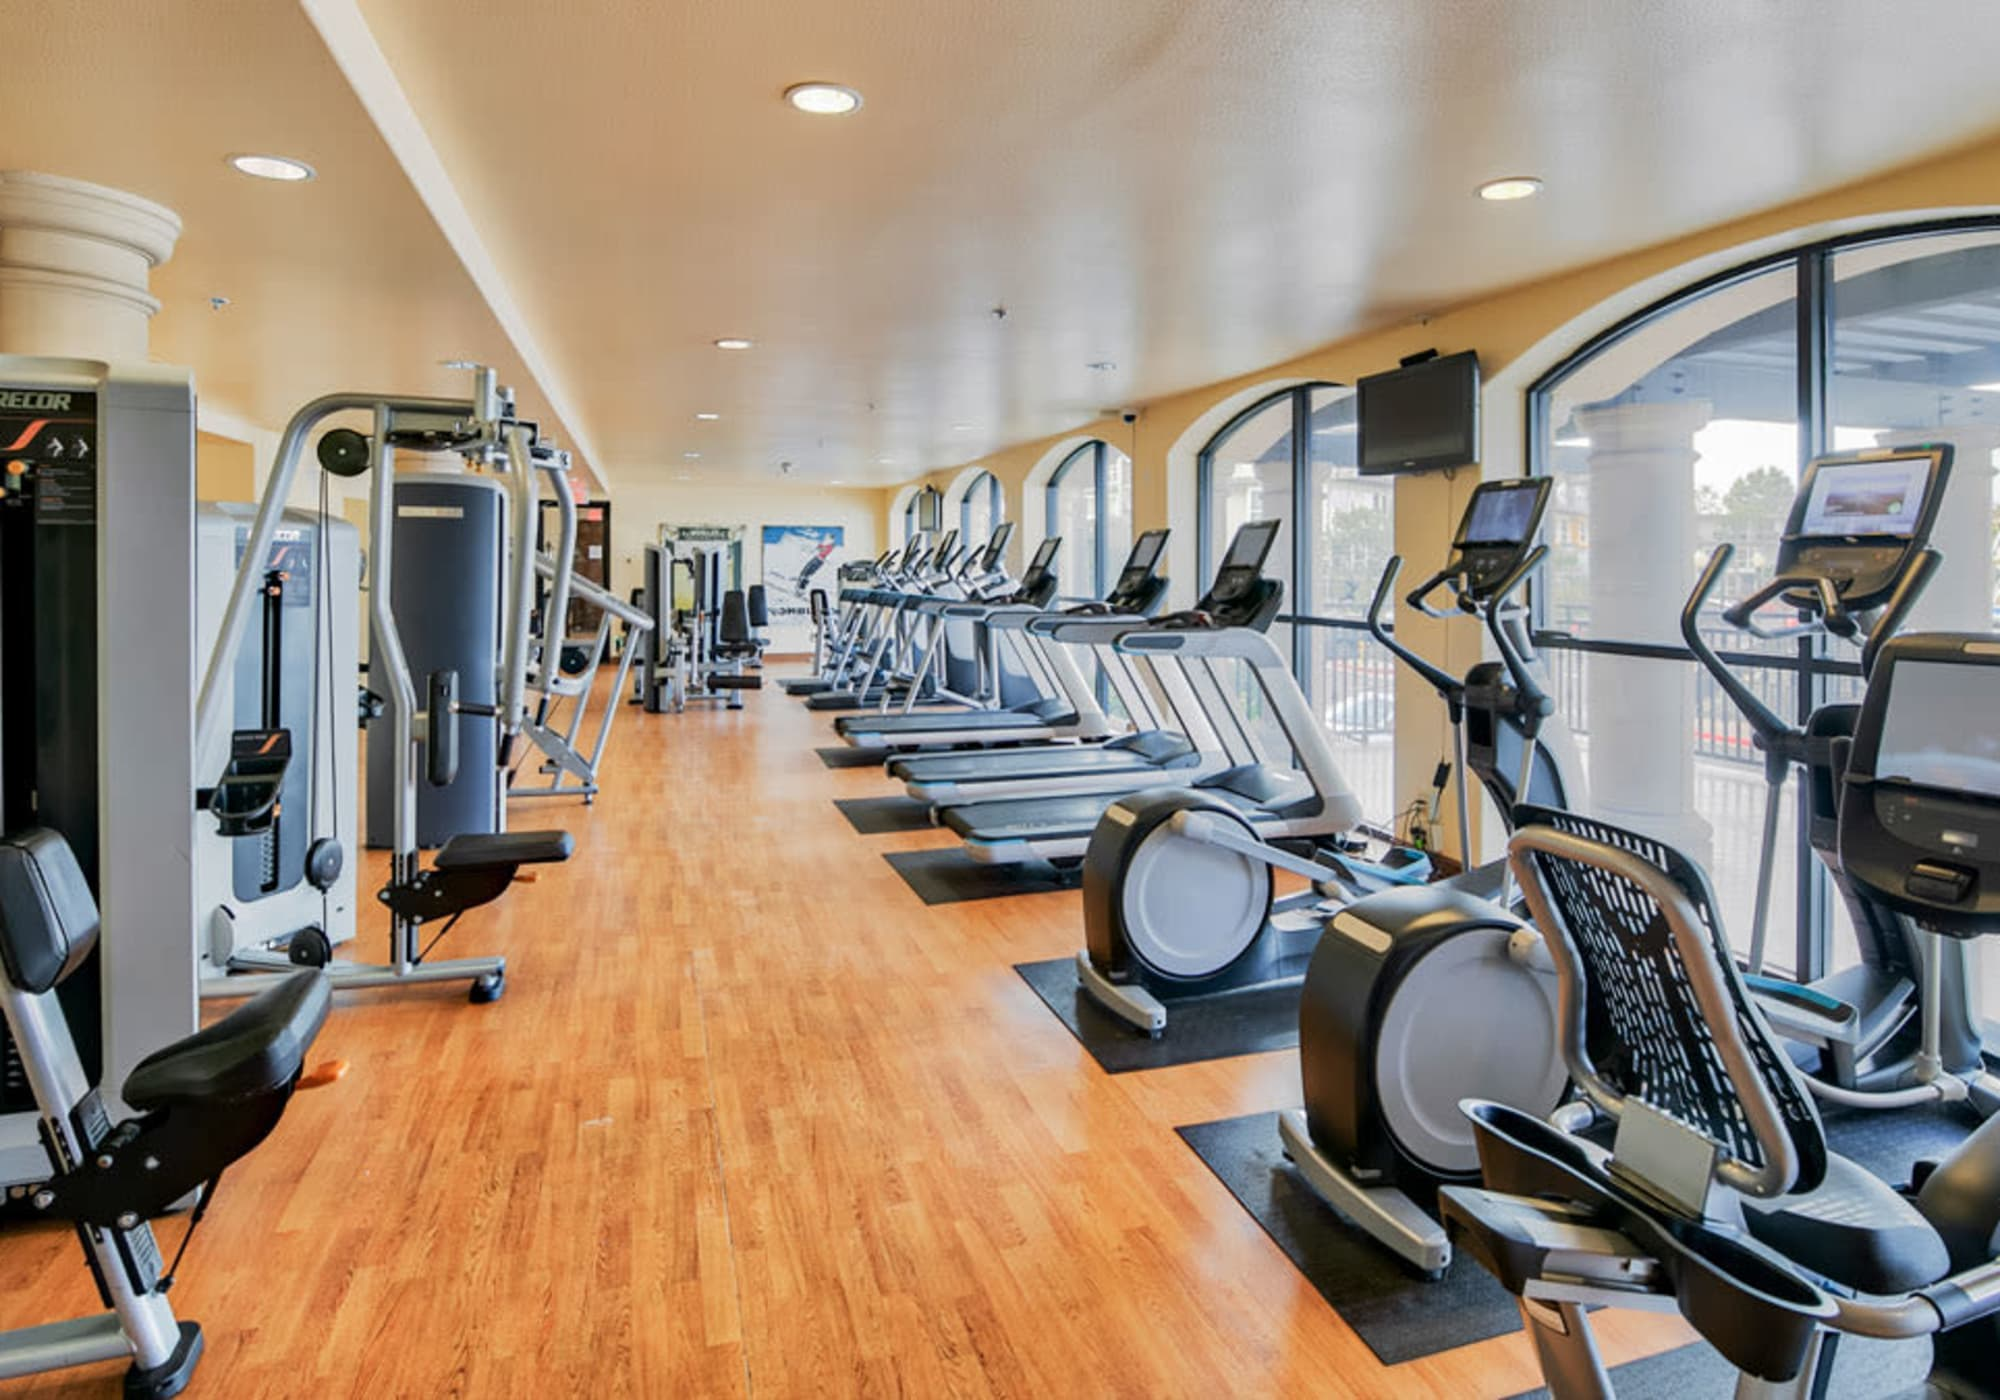 Very well-equipped fitness center at The Villa at Marina Harbor in Marina del Rey, California